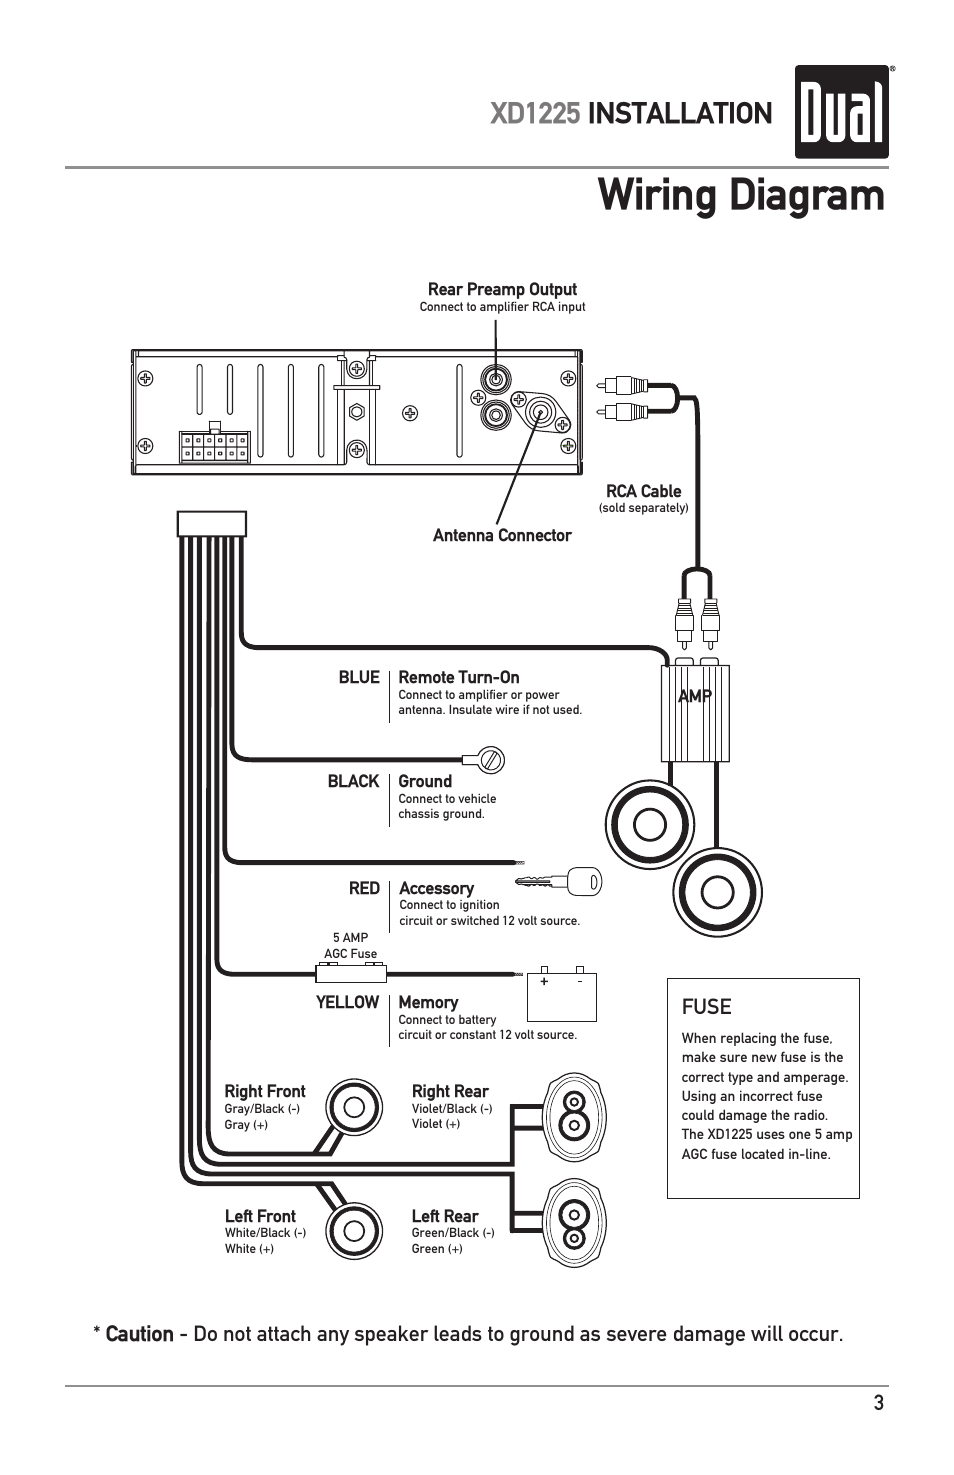 Dual Xd1225 Wiring Diagram from www.manualsdir.com